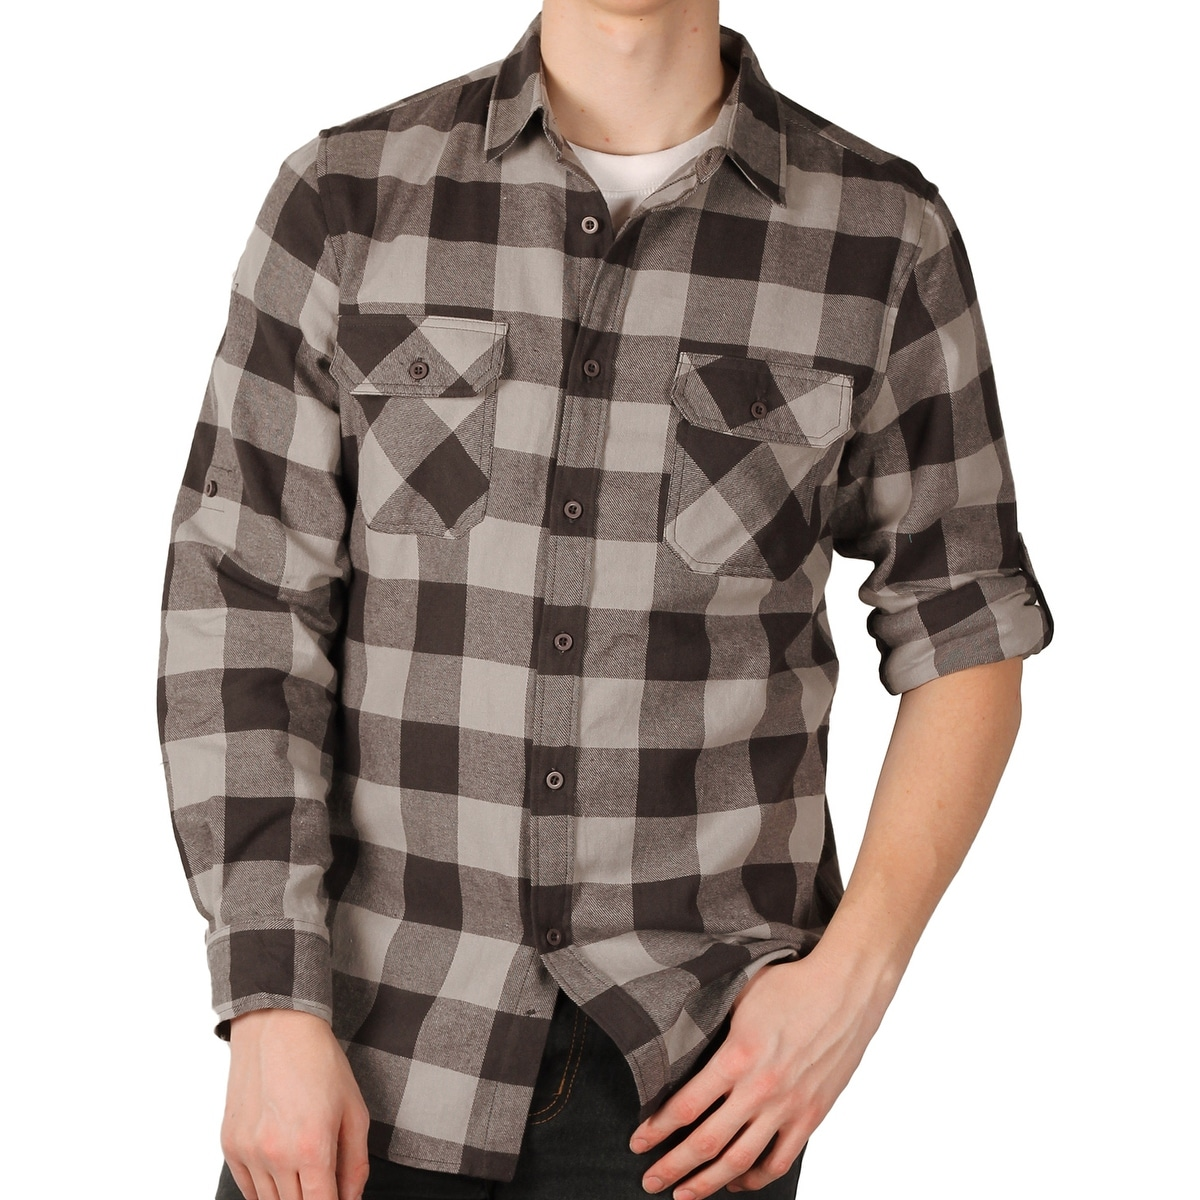 3bb90036 Shop Straight Faded Men's Roll-Sleeve Flannel Shirt - Free Shipping On  Orders Over $45 - Overstock - 14466366